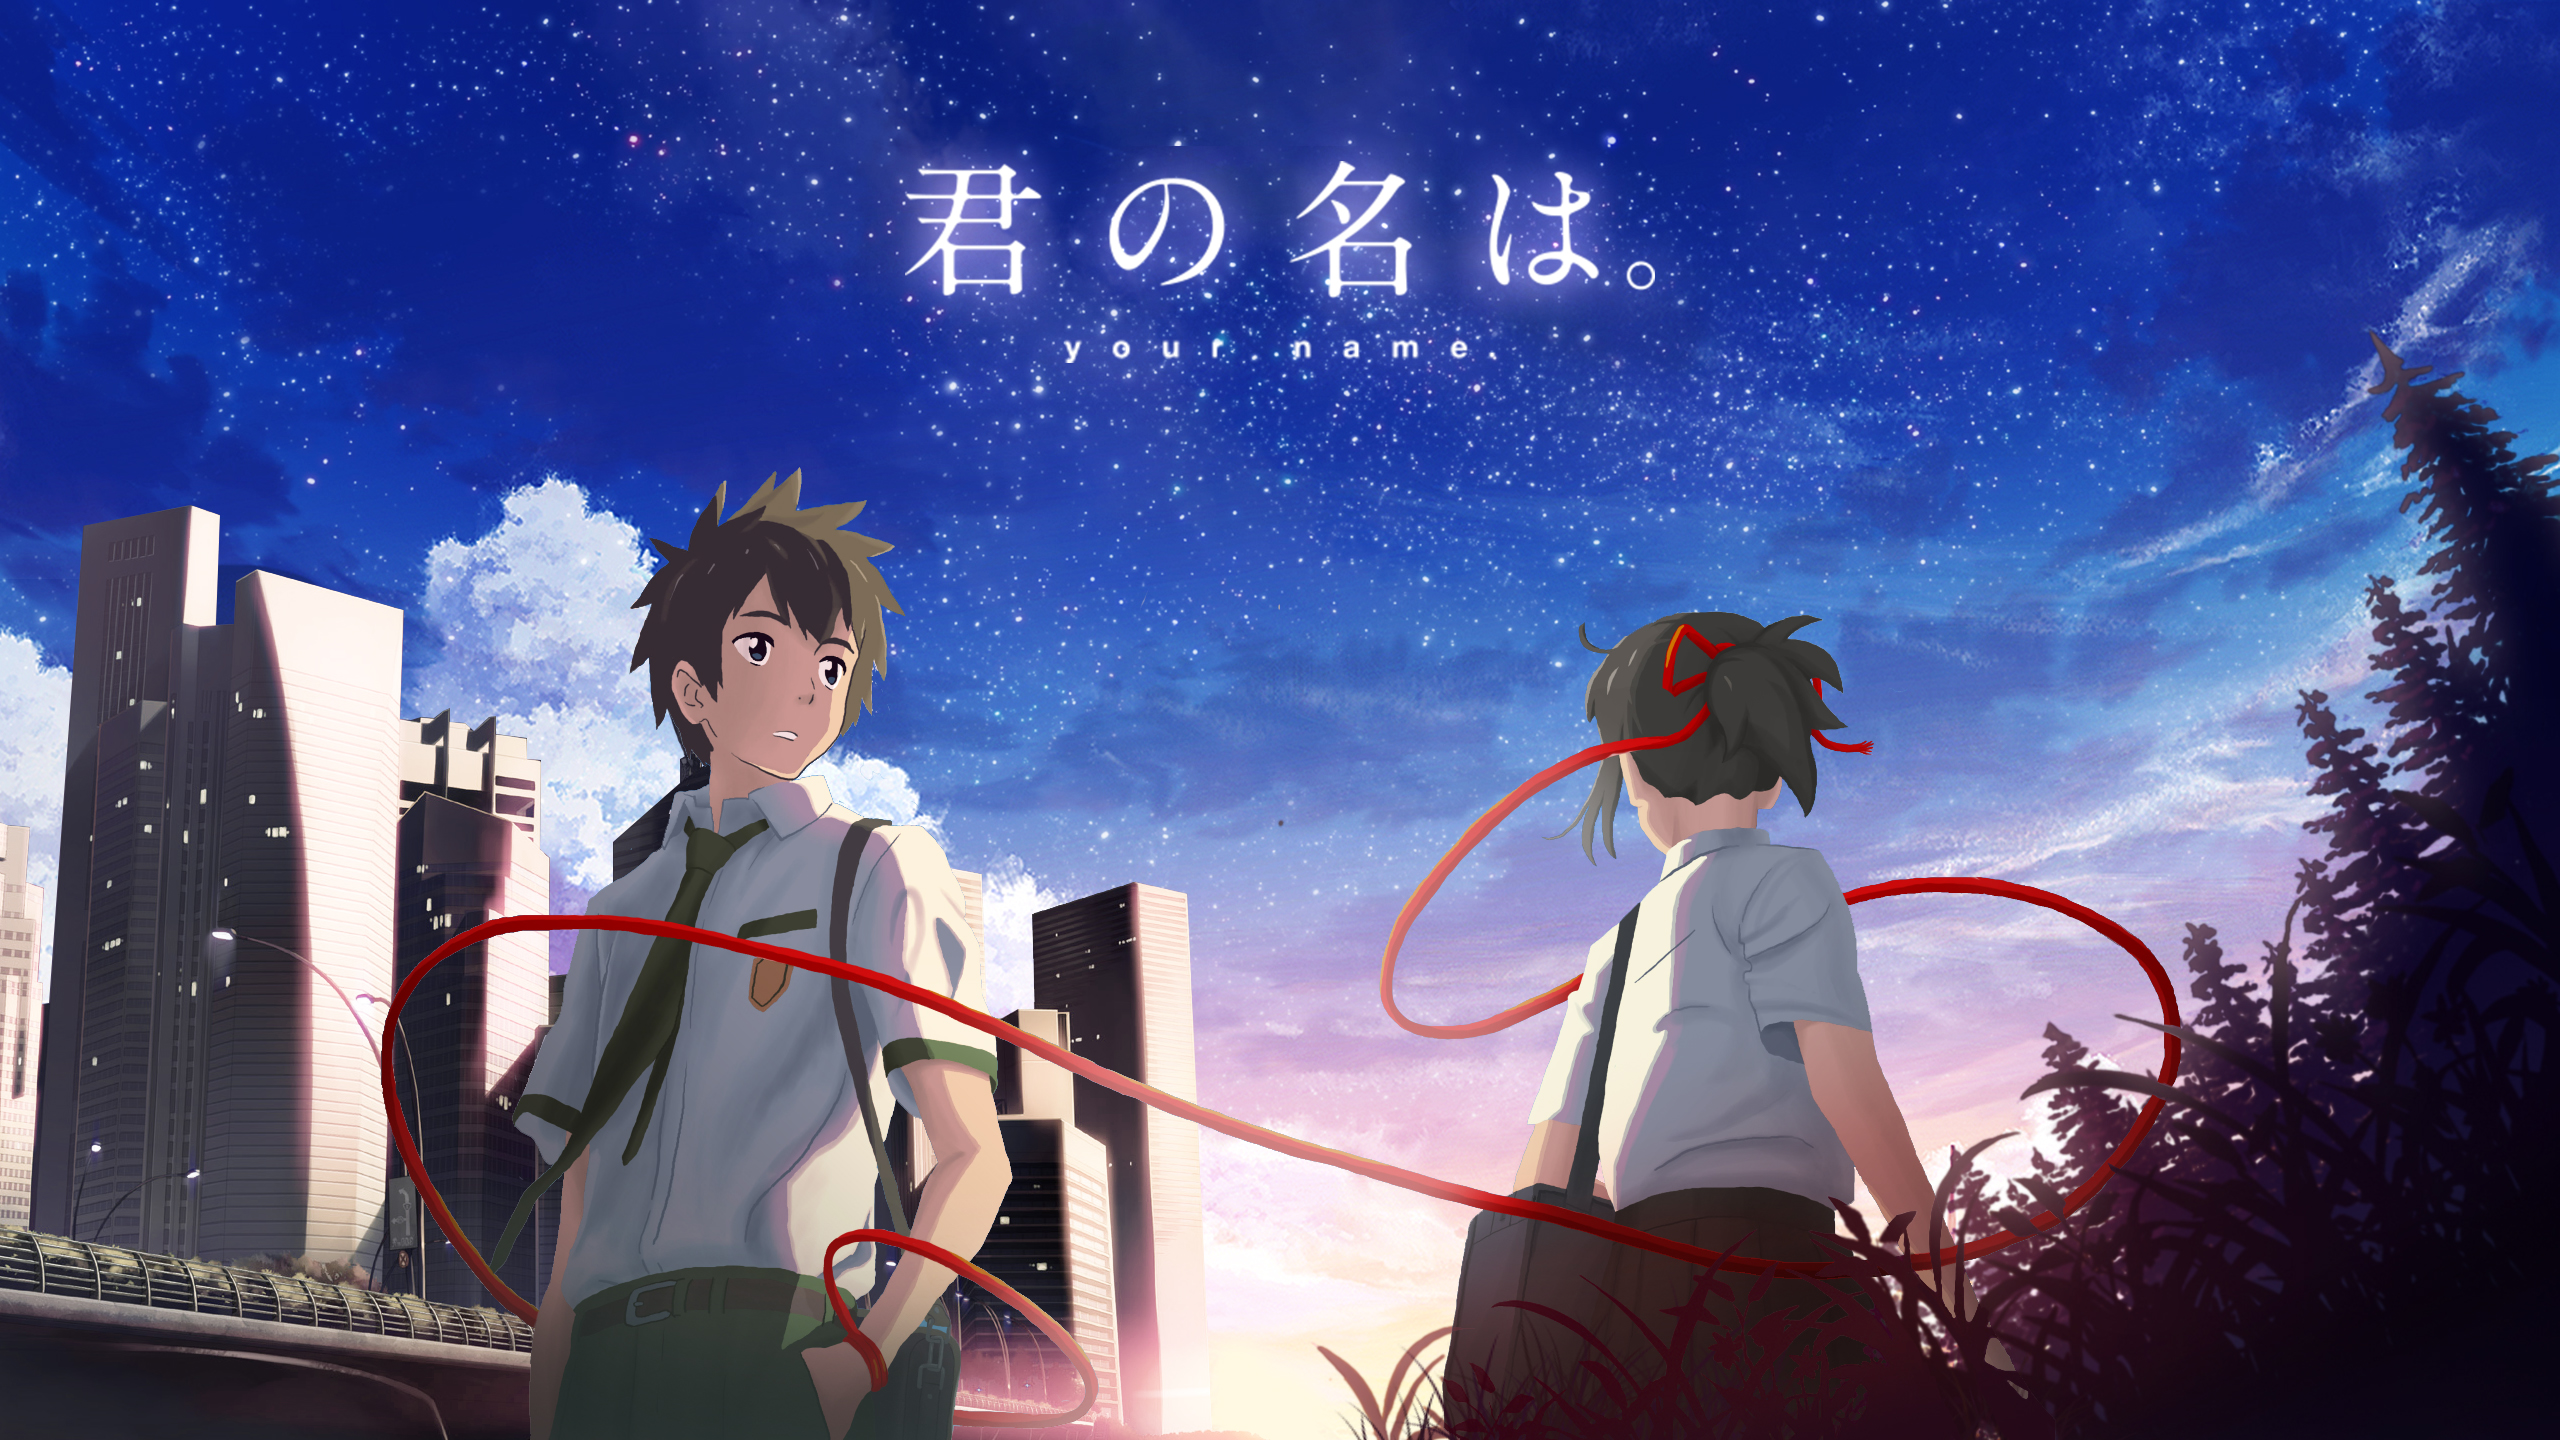 Kimi No Na Wa Wallpaper By Adiim On Deviantart